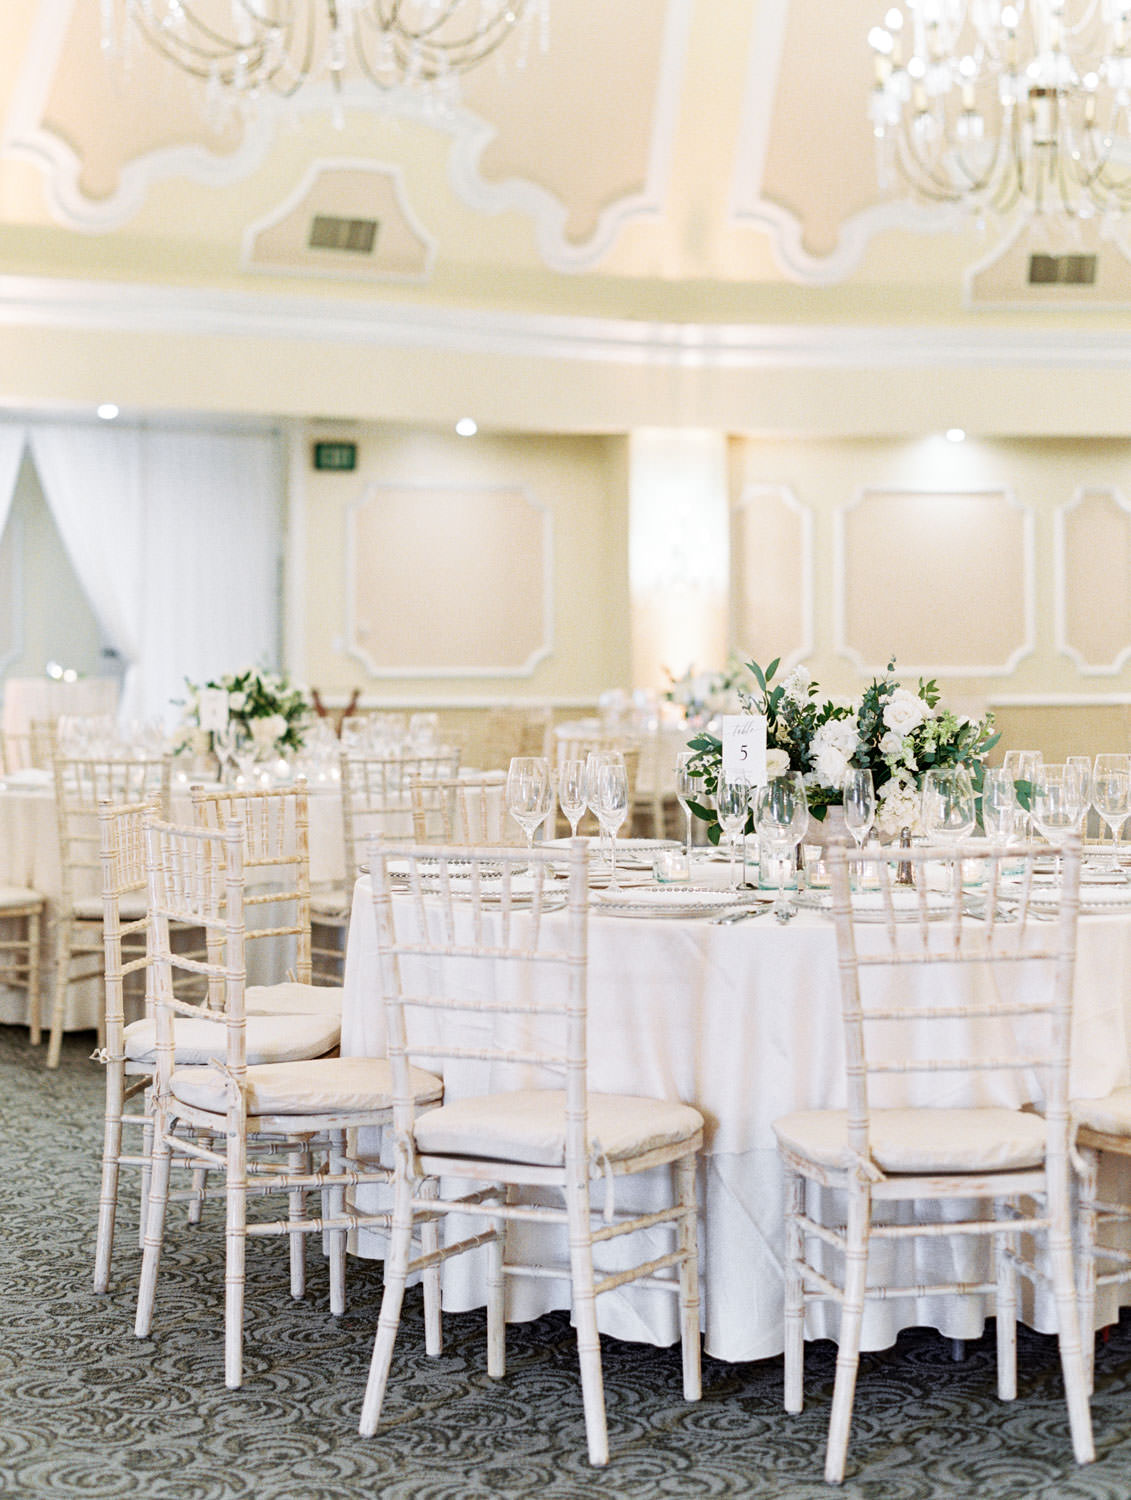 Ballroom round tables with white linens and chiavari chairs and ivory and green centerpieces. Hotel Del Wedding reception by Cavin Elizabeth